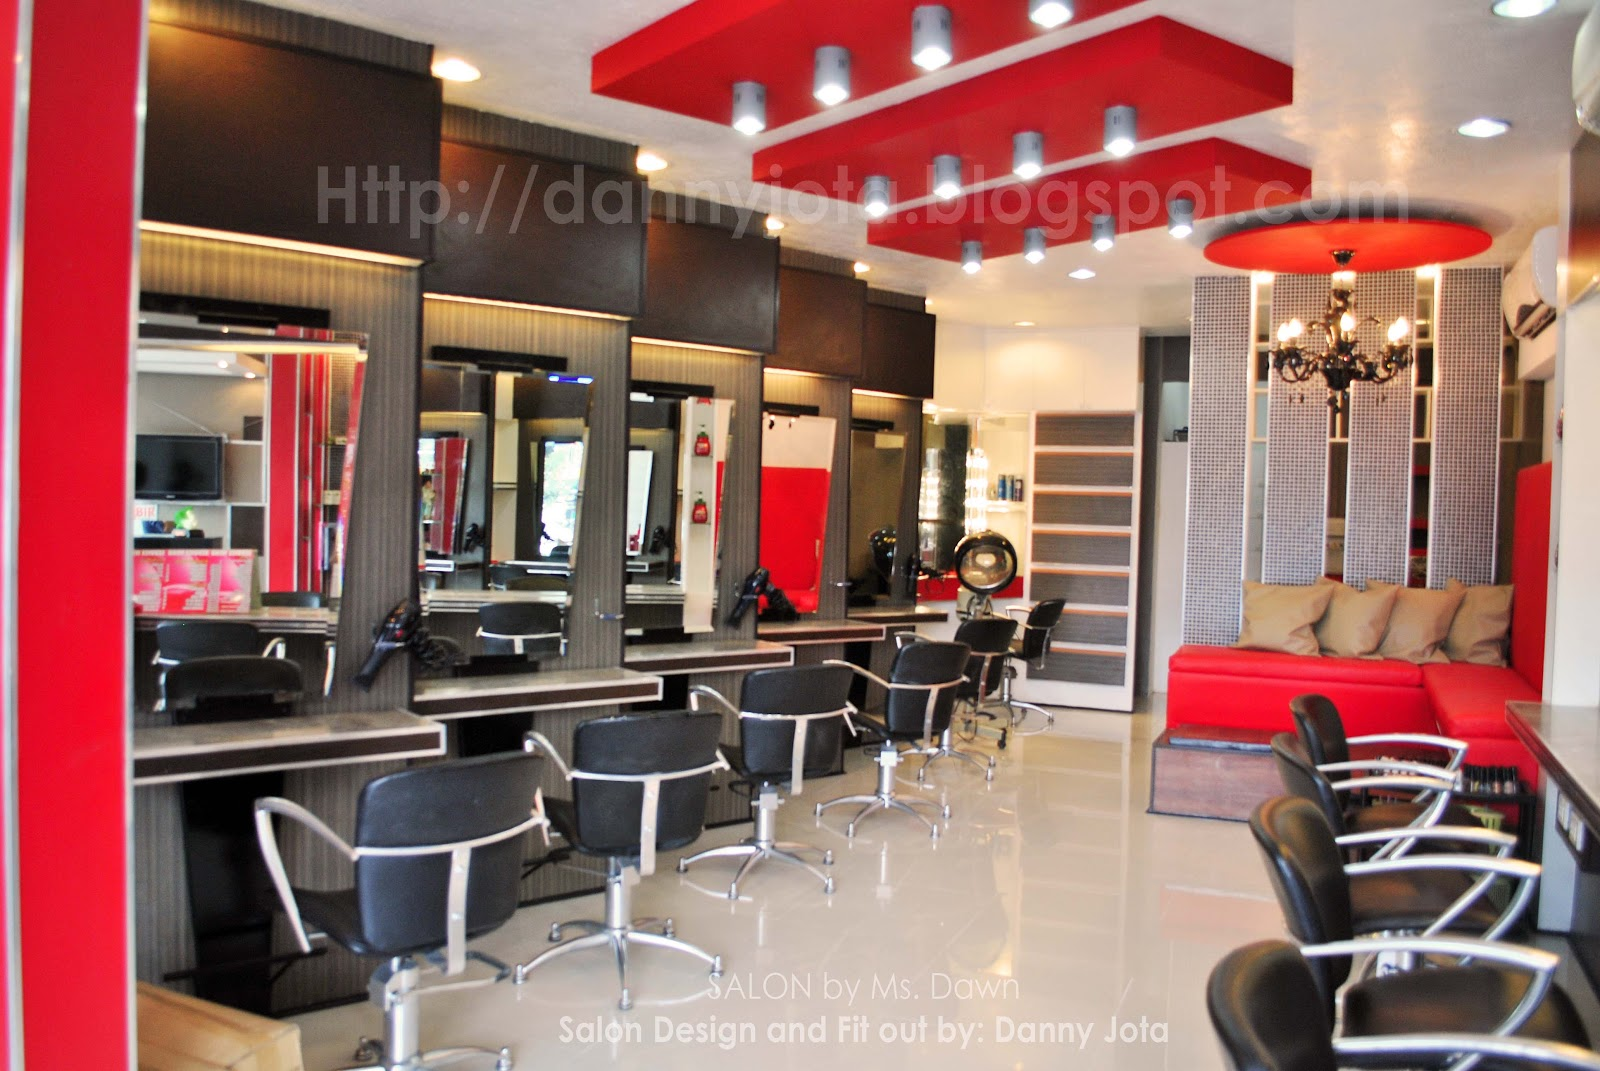 Danny torres jota djota designtech new salon design and renovation by danny jota - Sallon design ...